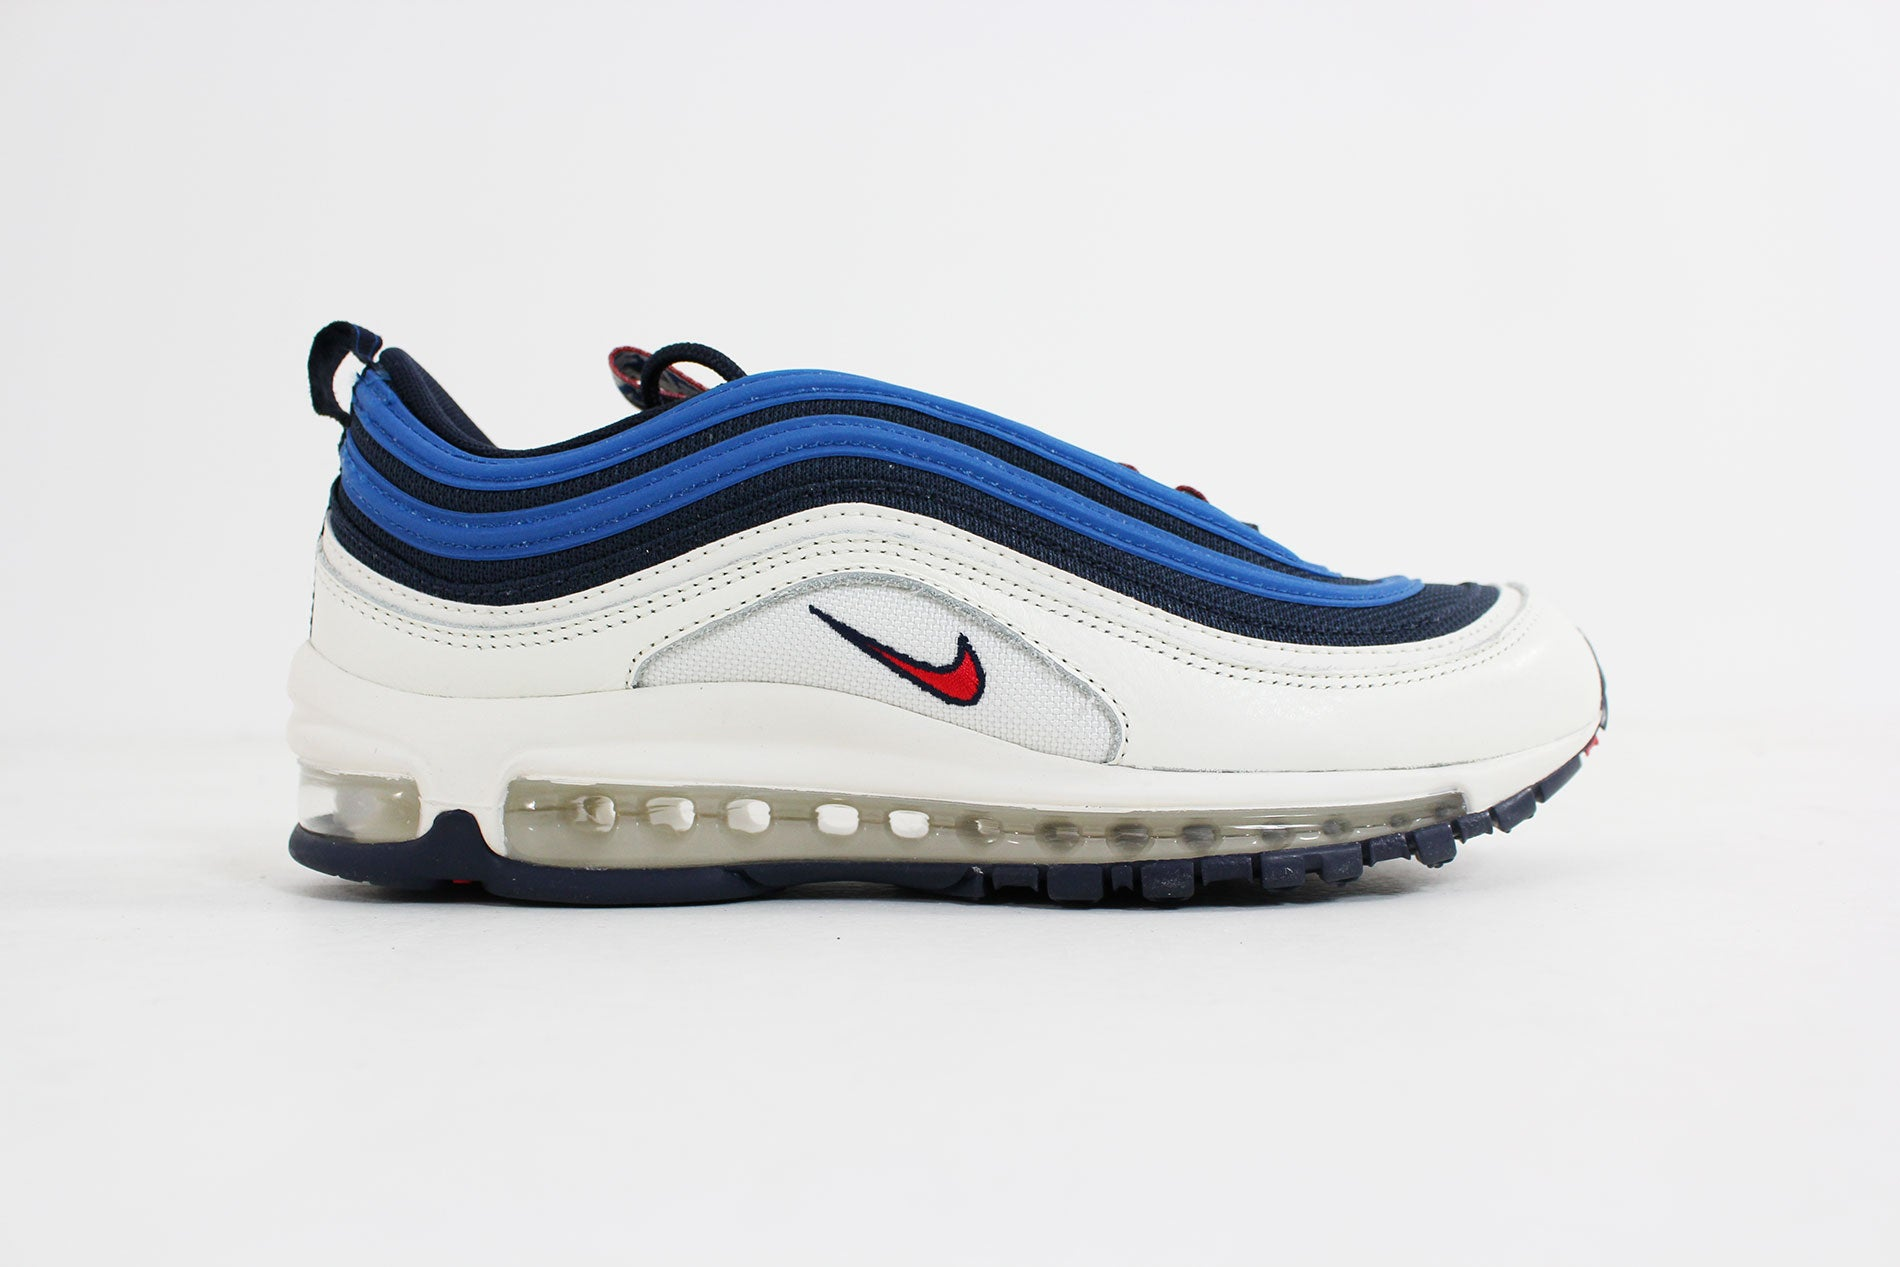 Nike - Air Max 97 SE (Obsidian/ University Red-Sail Blue Nebula) AQ4126-400